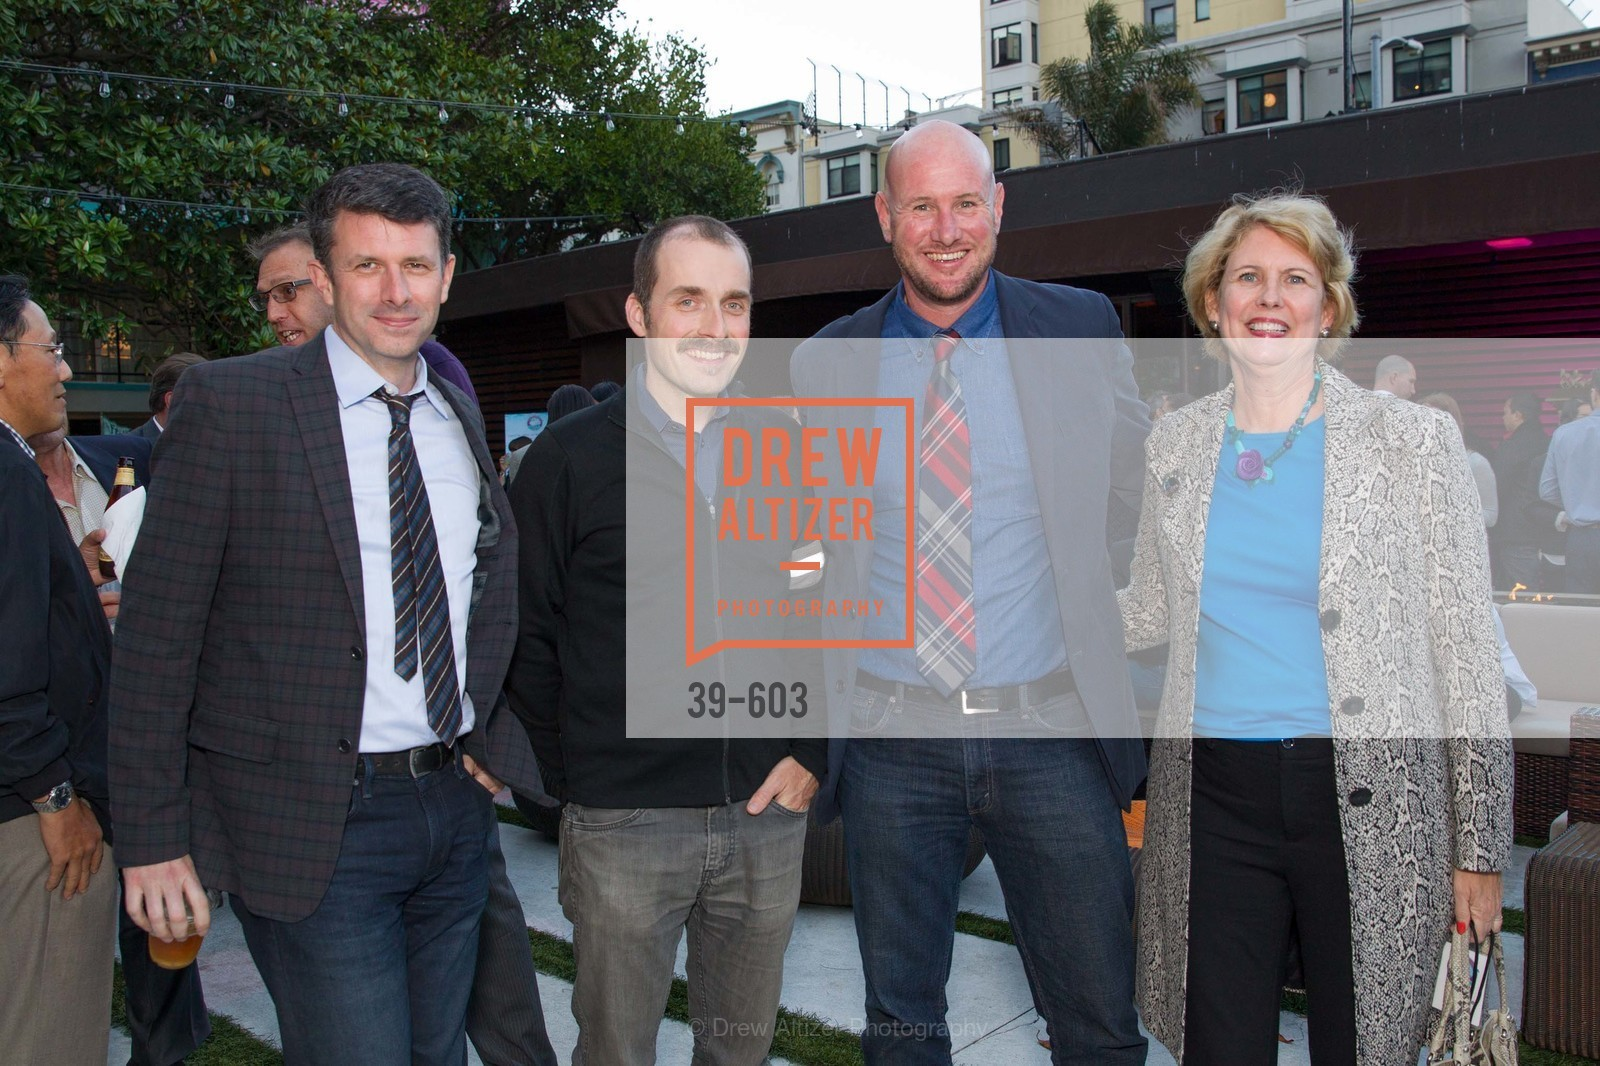 Ian Dunn, Mark Hogan, Steve Sutton, Christine Carr, 22nd Annual TNDC CELEBRITY POOL TOSS, US, October 8th, 2014,Drew Altizer, Drew Altizer Photography, full-service agency, private events, San Francisco photographer, photographer california